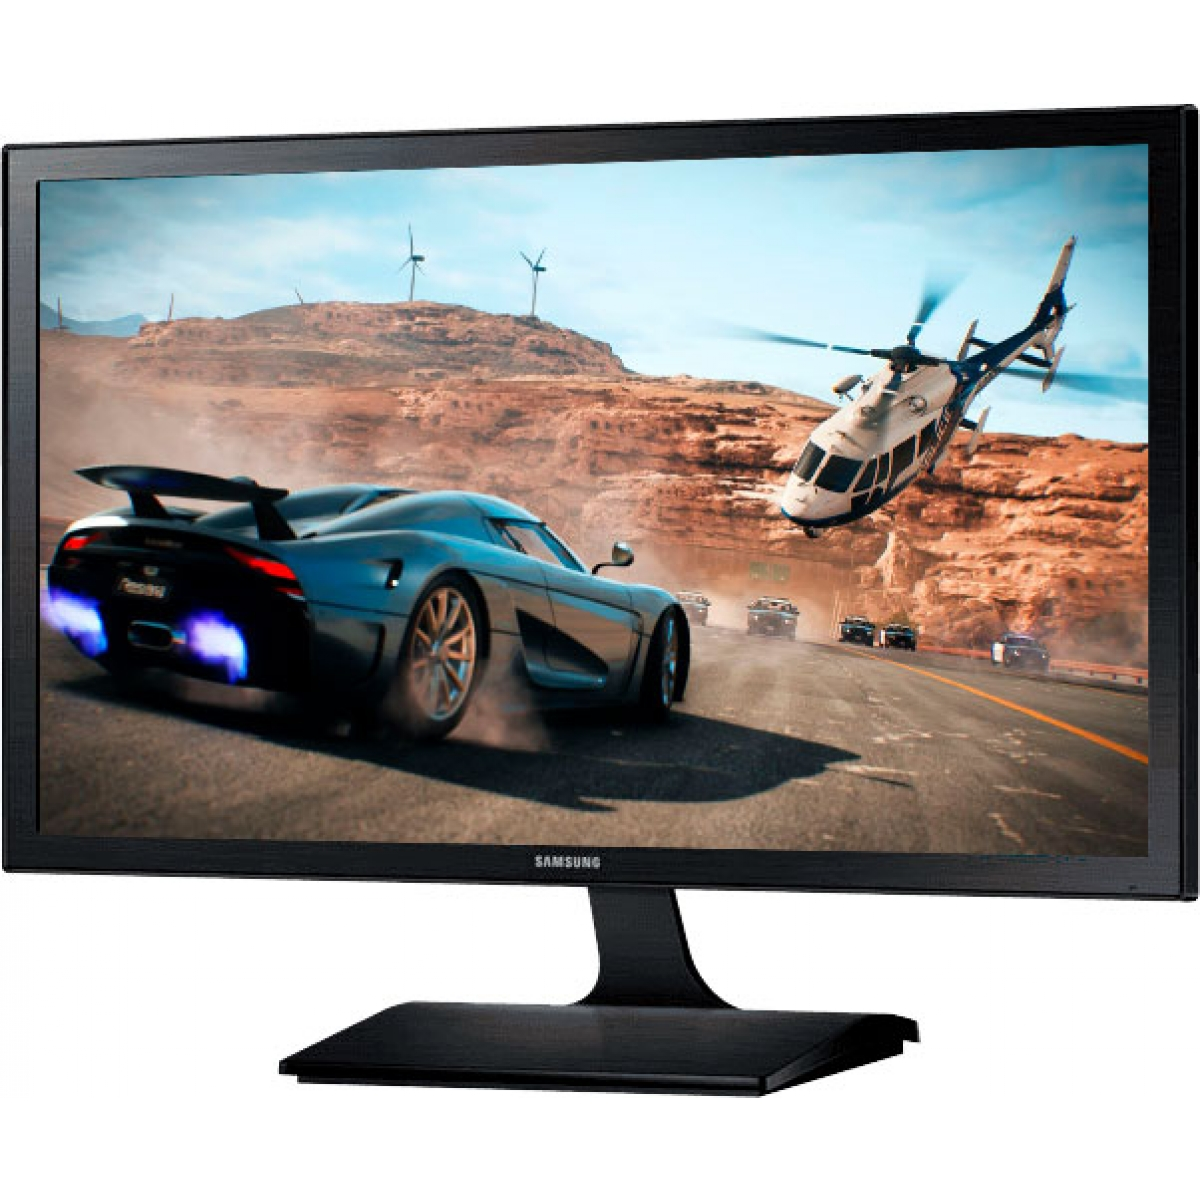 Monitor Gamer Samsung 21.5 Pol, Full HD, 60Hz, 5ms, LS22E310HYMZD